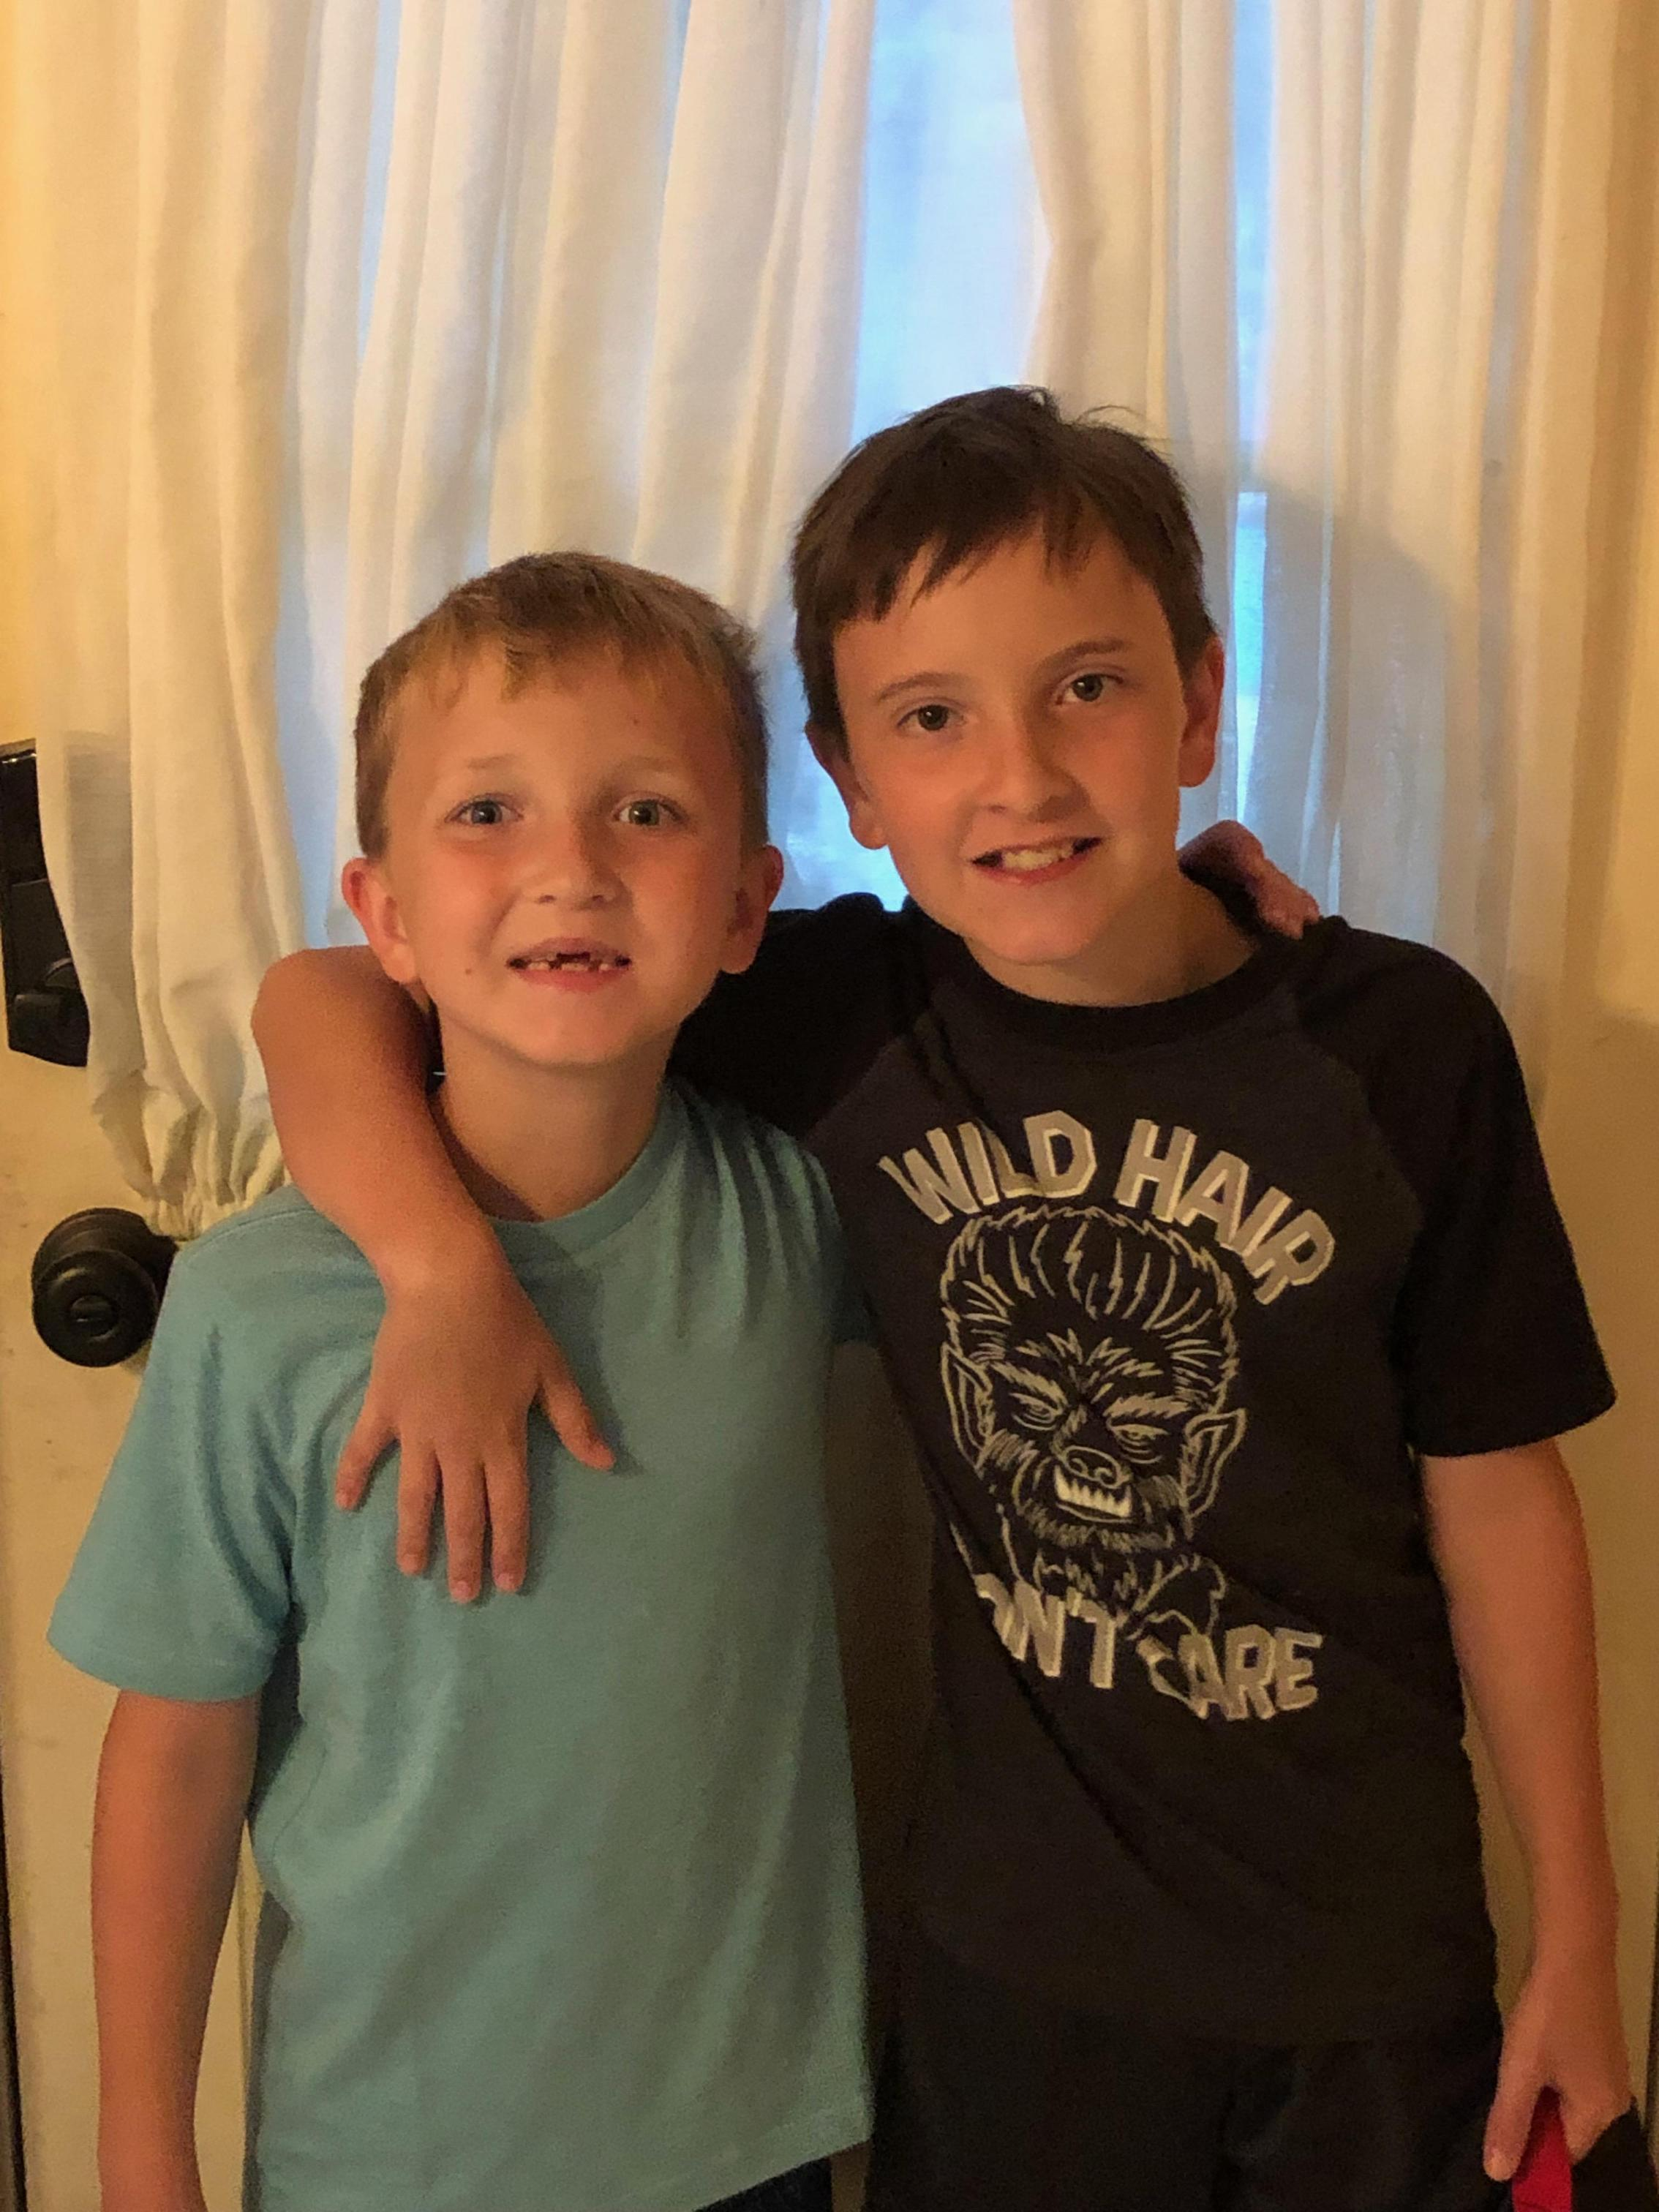 My boys! Kelly & Zach